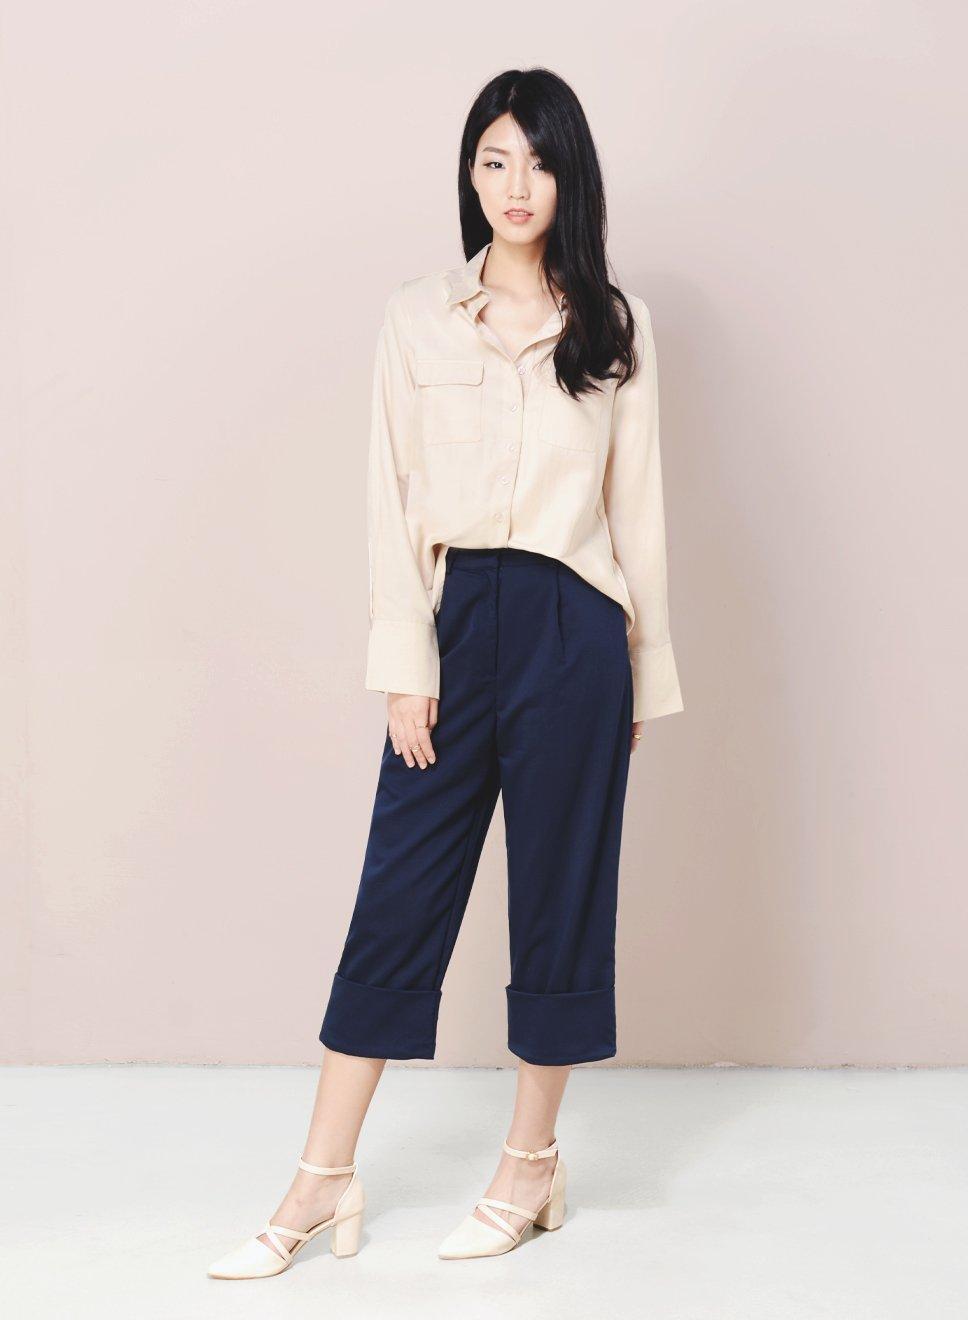 DIVERGE Split Back Buttoned Shirt (Champagne) at $ 19.50 only sold at And Well Dressed Online Fashion Store Singapore